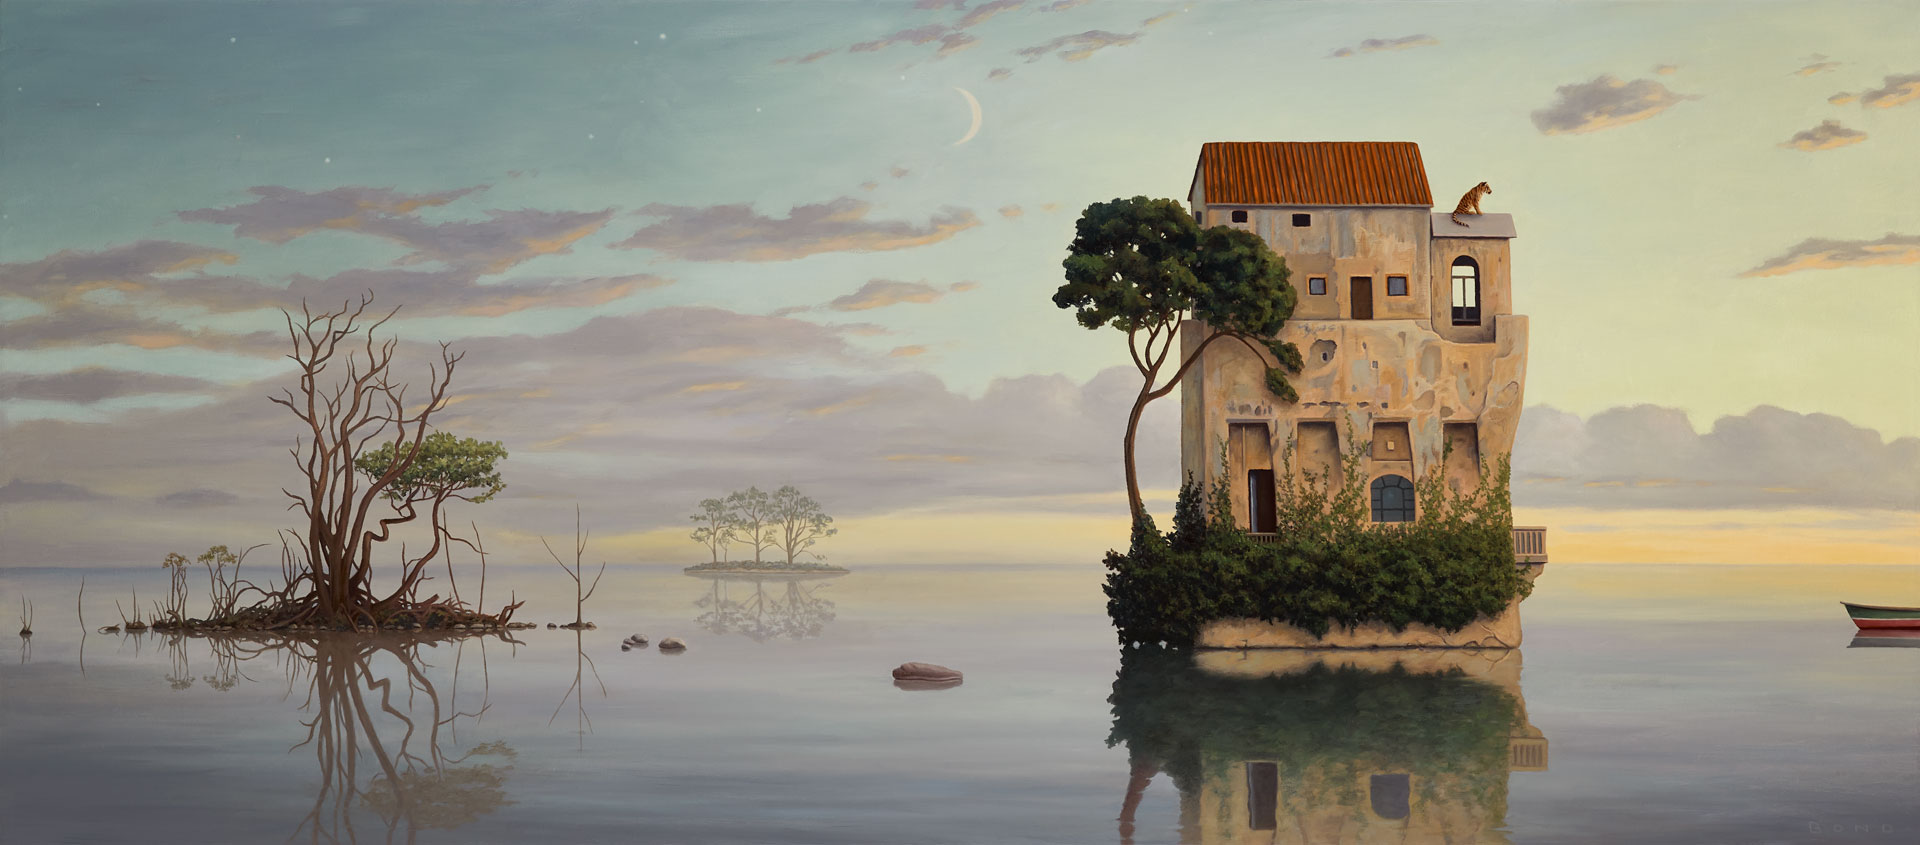 In the Waning Days of the Solitude, painting of Italian villa atop an island, art about meditation, painting meaning quarantine, positive art, art with boat, ocean with sunset sky painting, art with clouds and trees, art with water reflection, painting with the sea, magic realism art of tree, painting of Covid, Covid-19, Coronavirus related art, surreal art with tiger, painting with nature, peaceful art, painting about courage, Bengal tiger, soulful uplifting inspirational art, soul stirring illusion art, romantic art,  surrealism, surreal art, dreamlike imagery, fanciful art, fantasy art, dreamscape visual, metaphysical art, spiritual painting, metaphysical painting, spiritual art, whimsical art, whimsy art, dream art, fantastic realism art, limited edition giclee, signed art print, fine art reproduction, original magic realism oil painting by Paul Bond